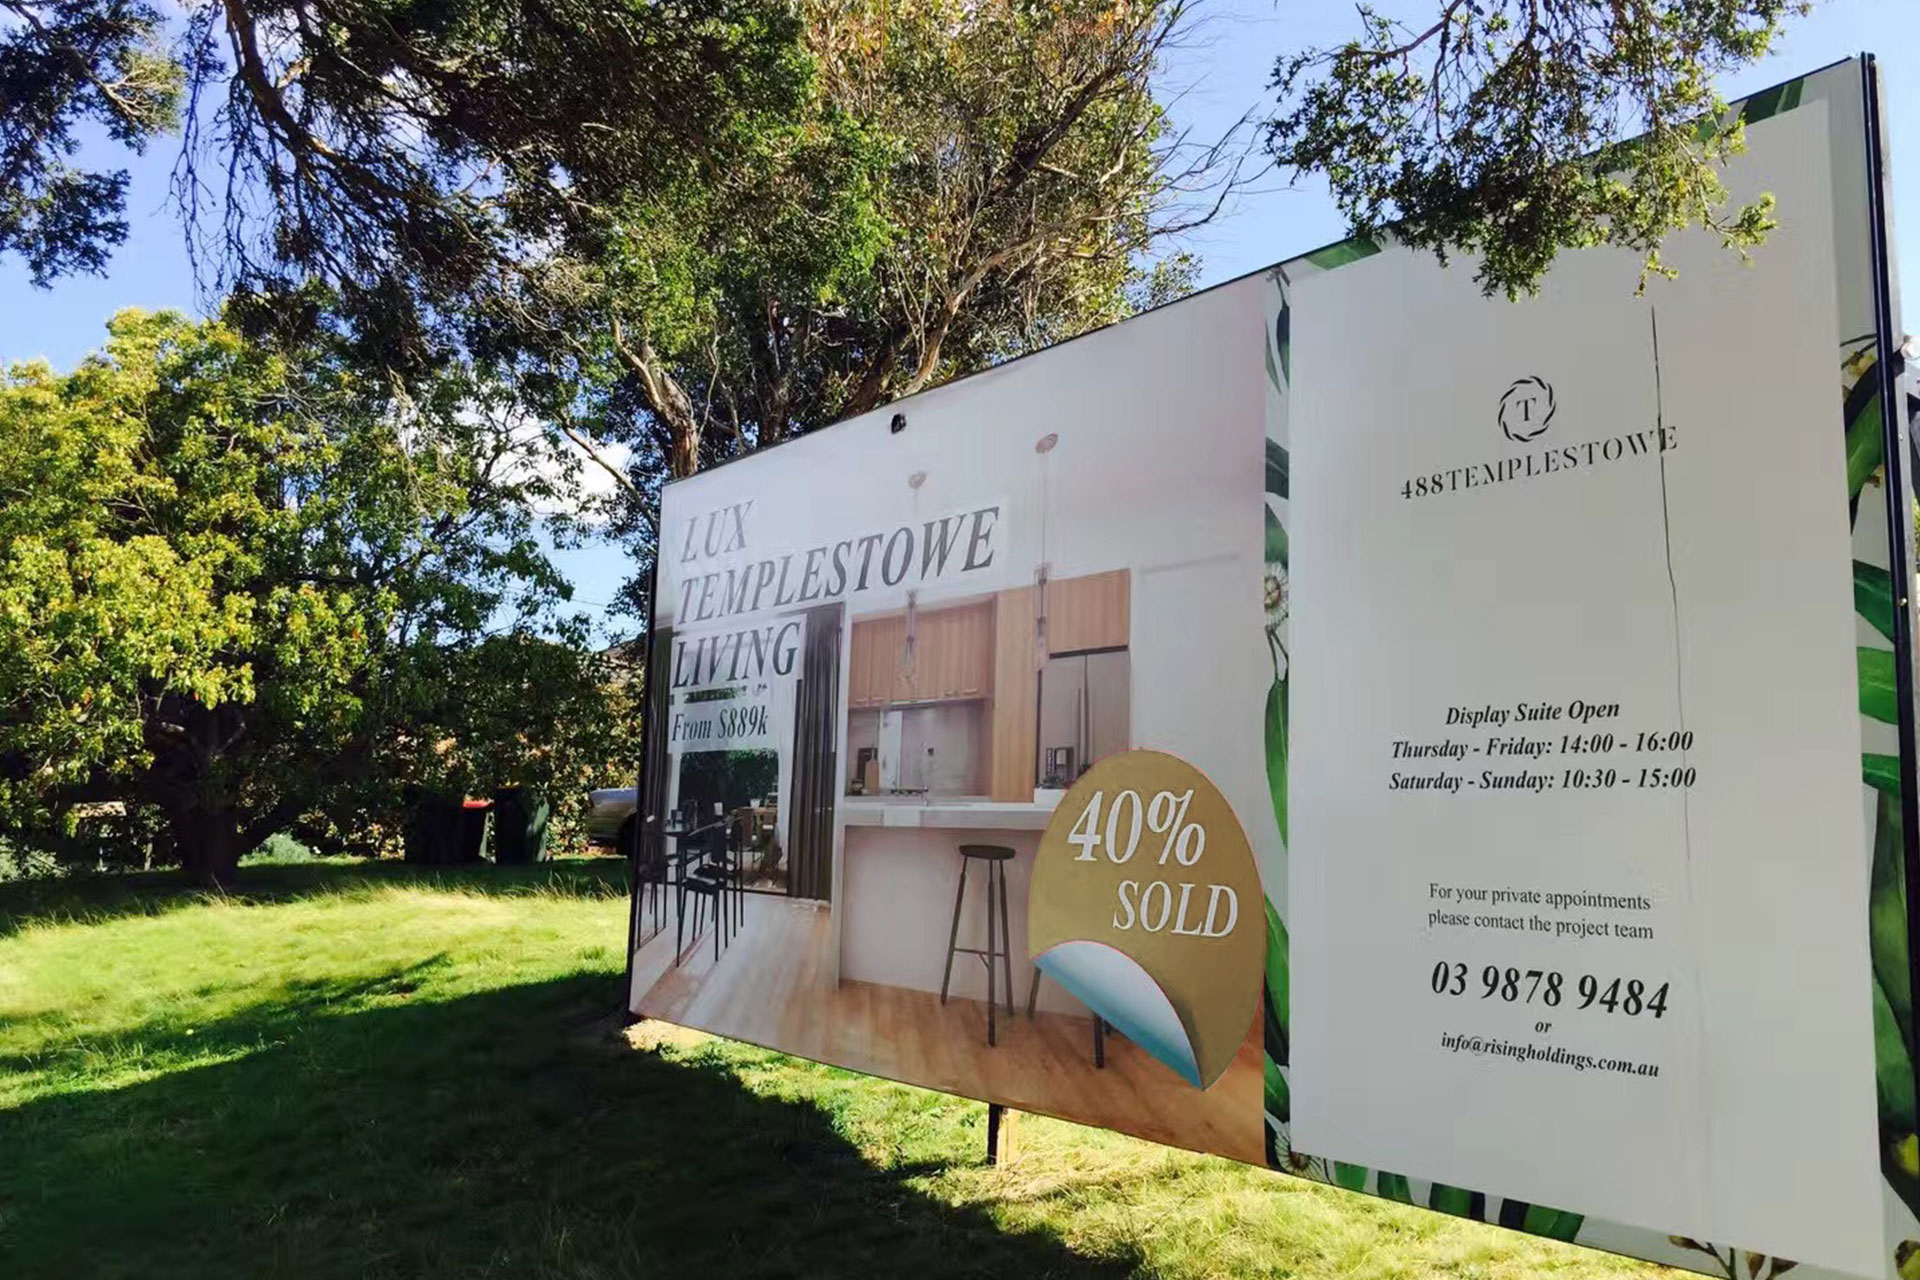 488 templestowe property branding by Z Creative Studio Branding & Graphic Design Melbourne